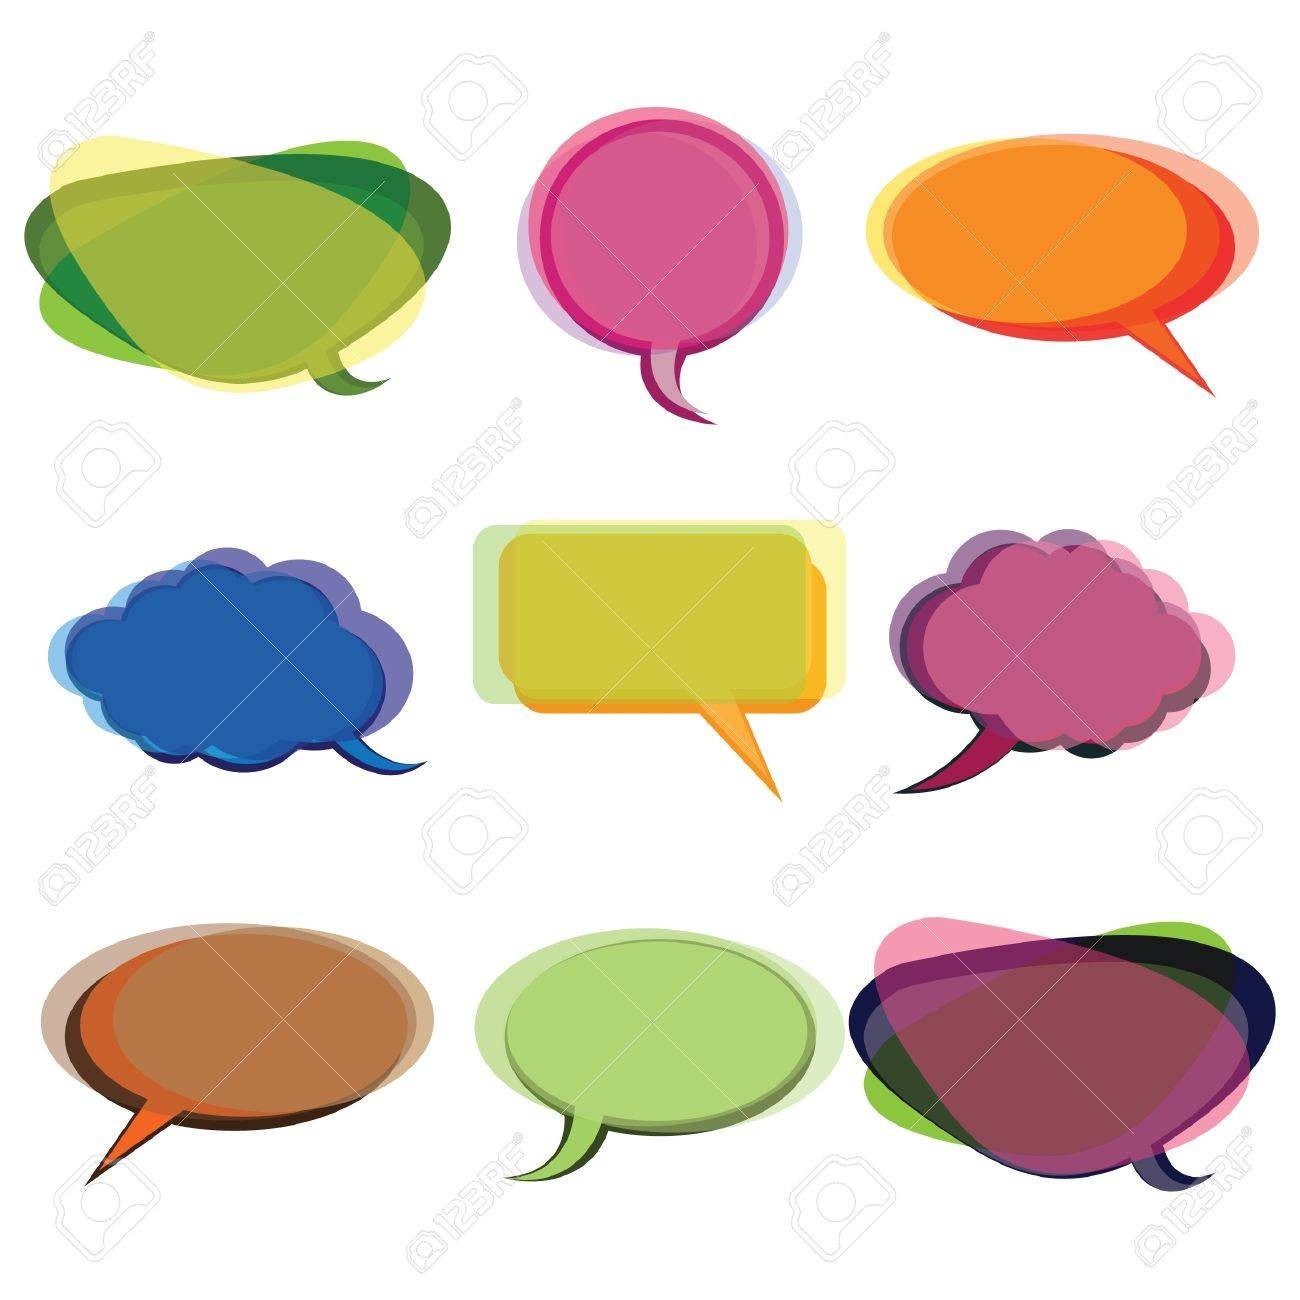 Collection of Colorful Speech And Thought Bubbles Background Stock Vector - 10023957